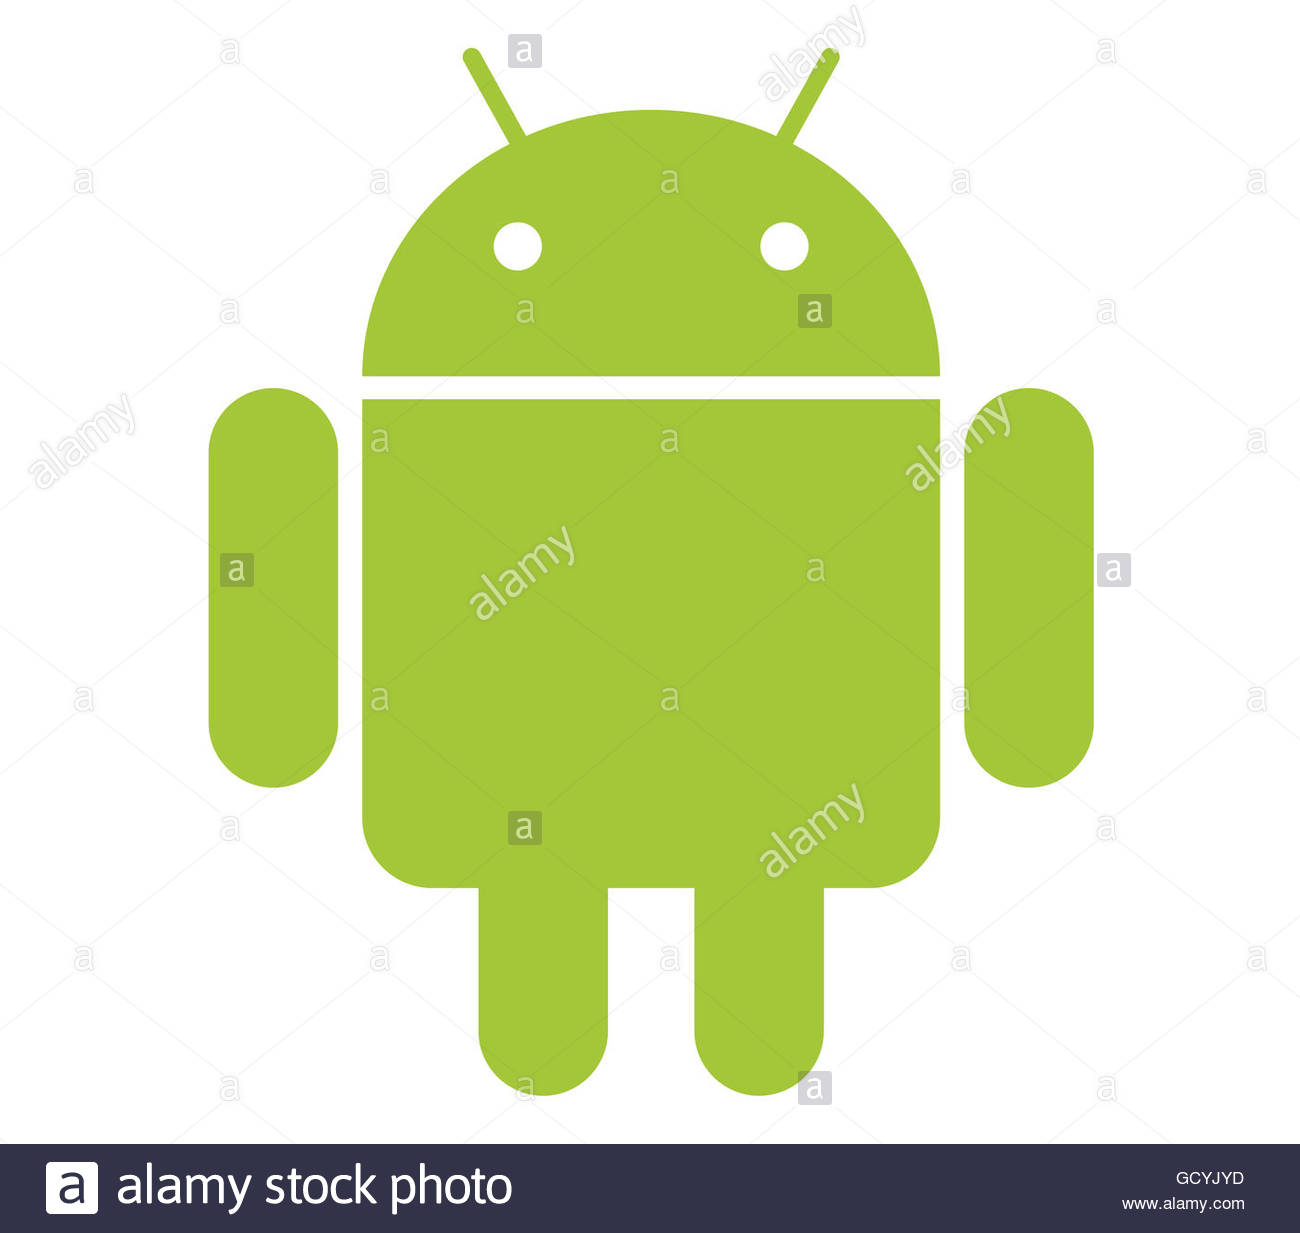 Android Symbol Stock Photos Android Symbol Stock Images Alamy